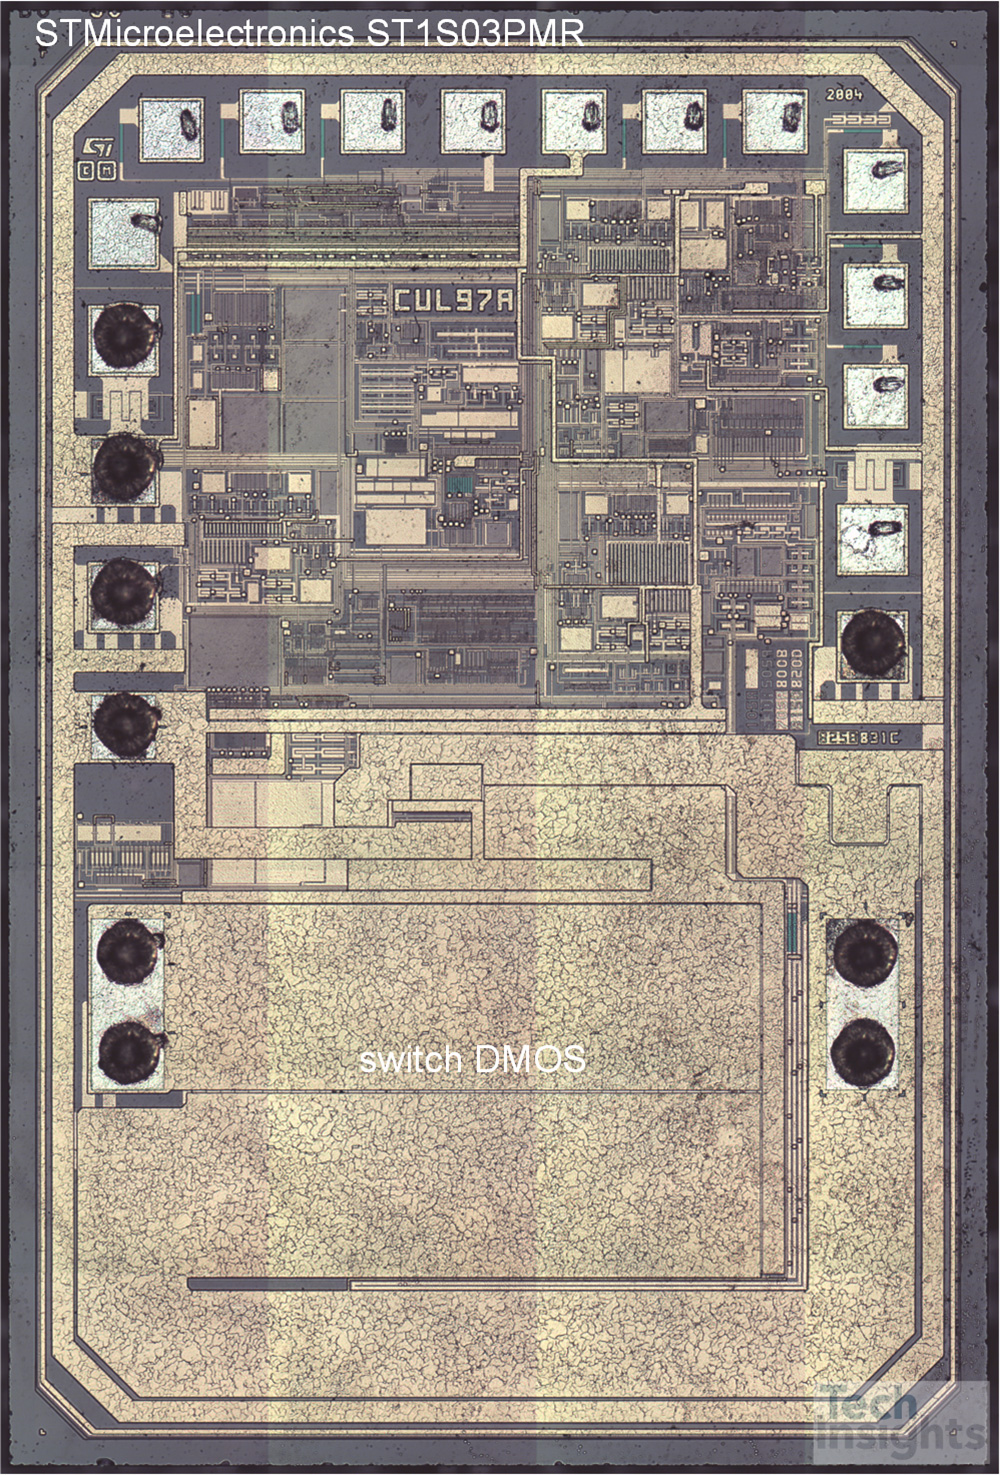 STMicroelectronics ST1S03 BCD6 Process Die Photograph